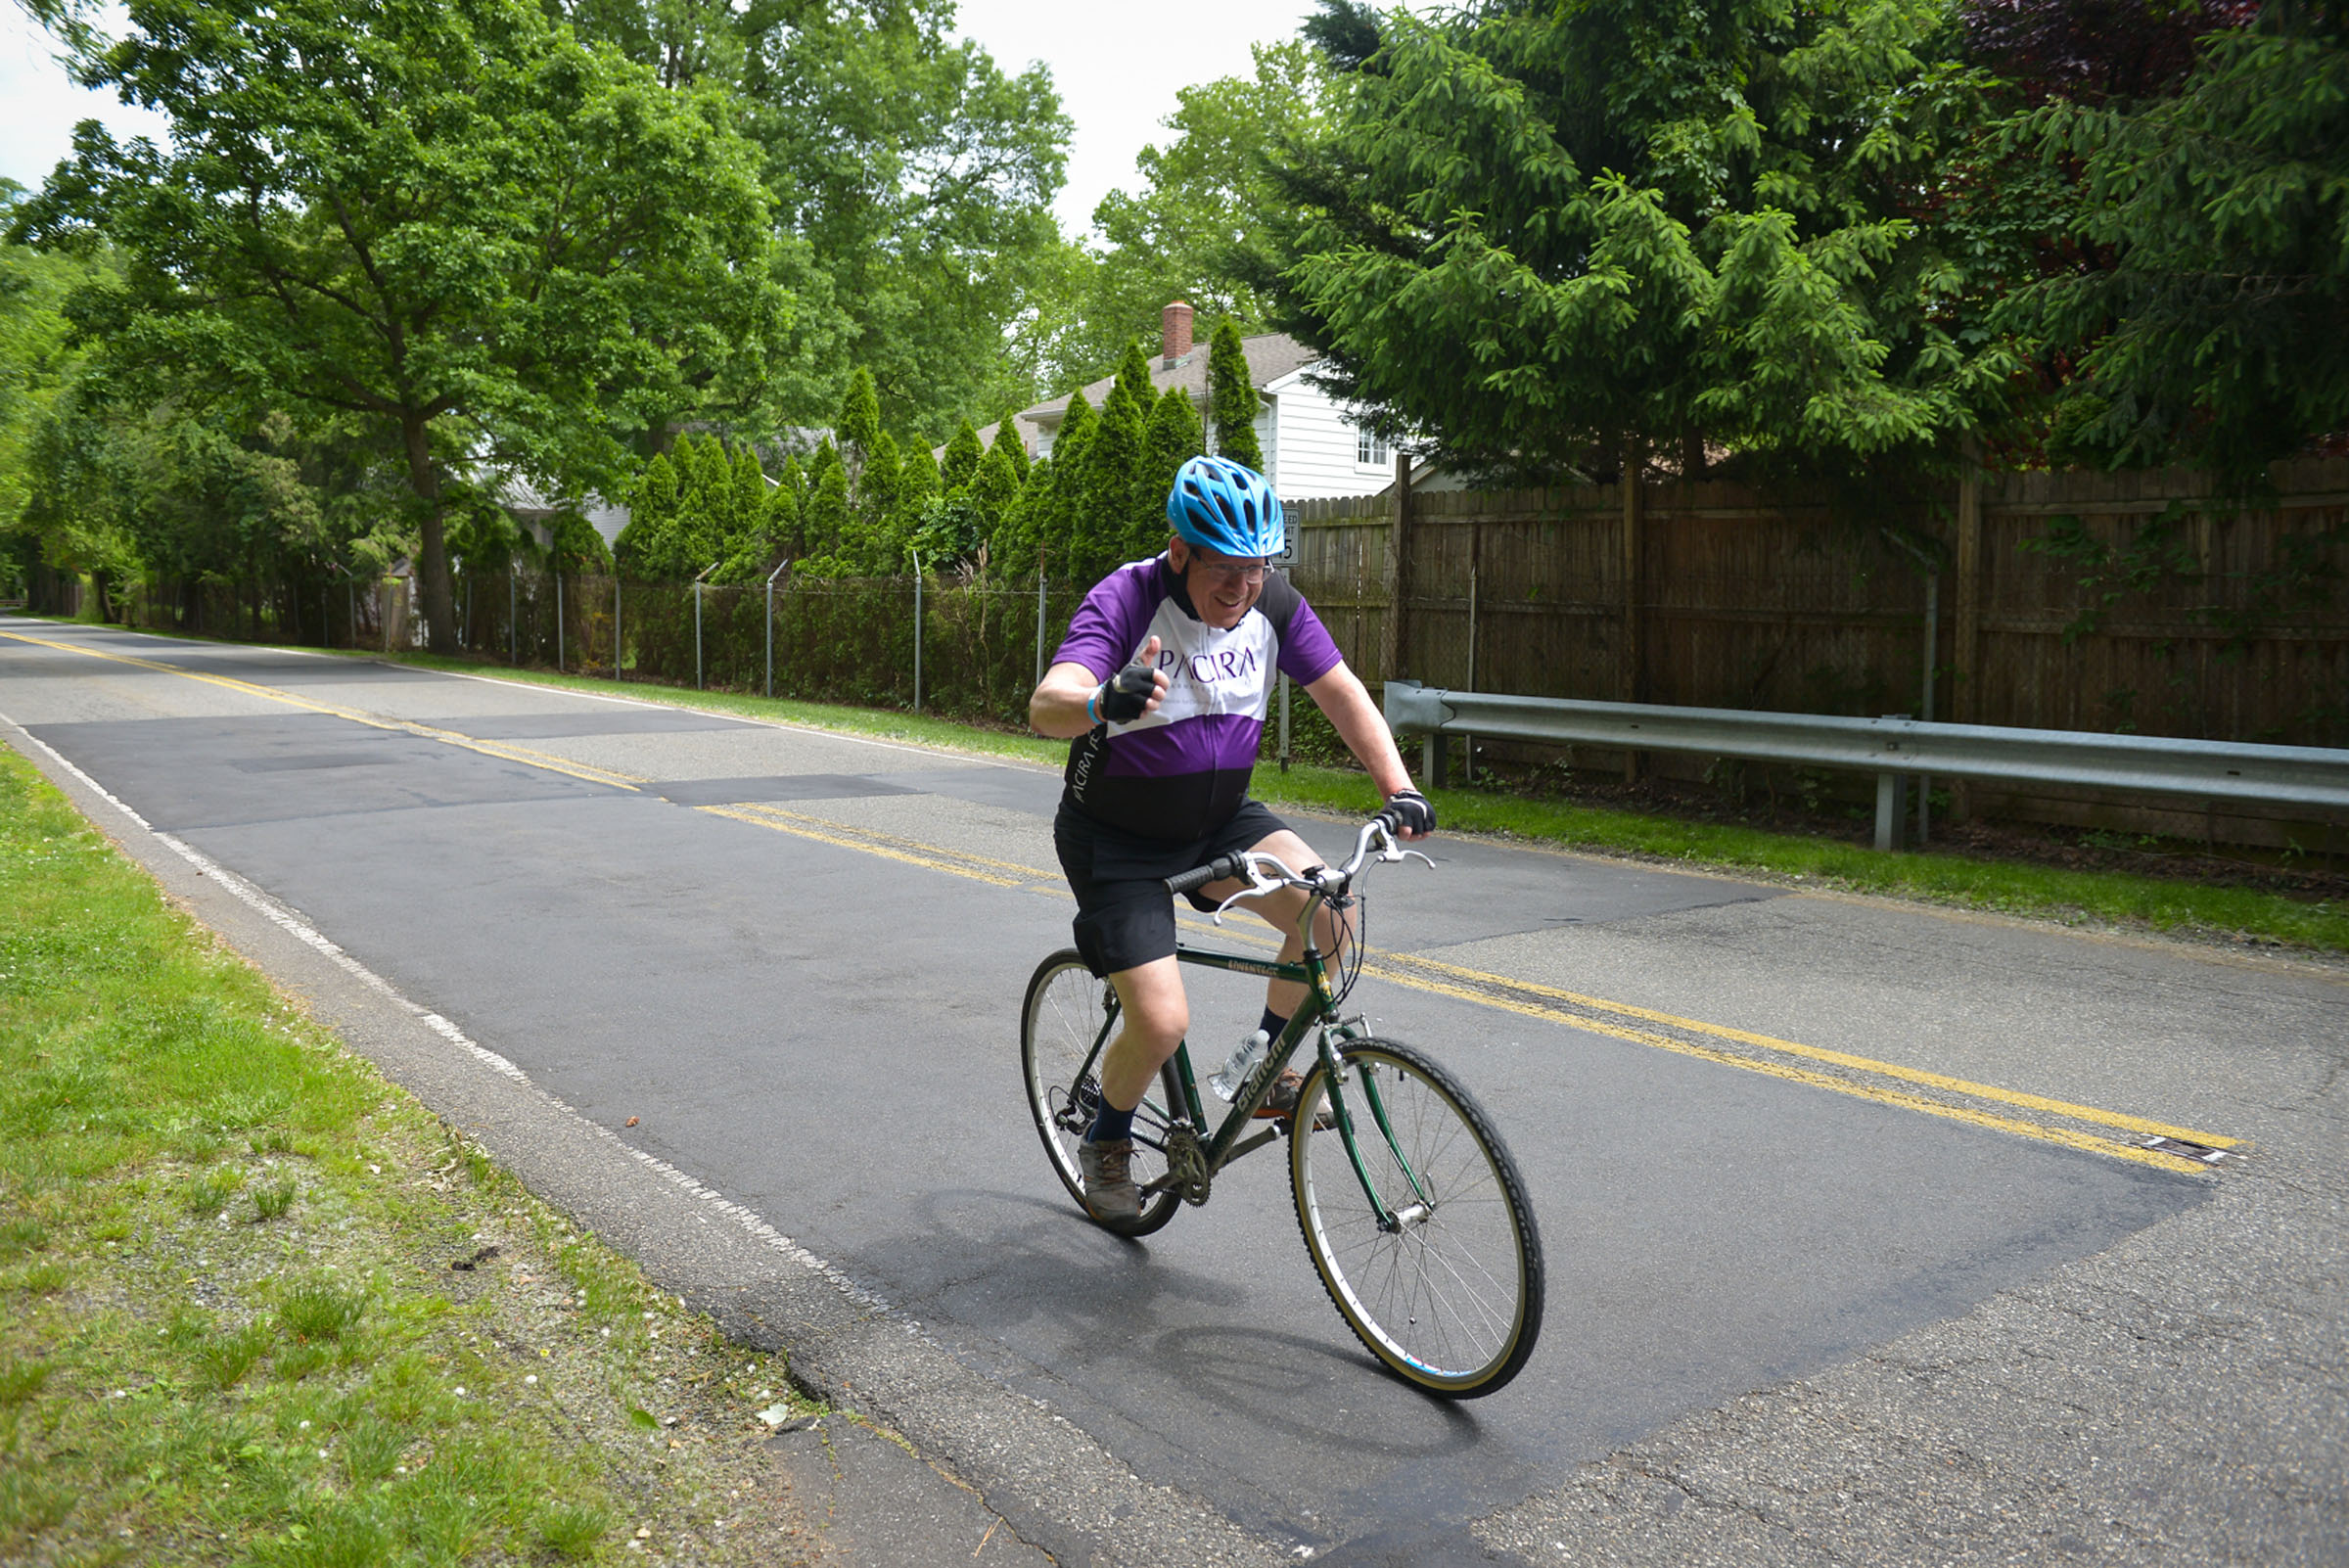 2017-06-04 GTD4A Charity Bike Ride - BCC - Paramus NJ-2417.jpg